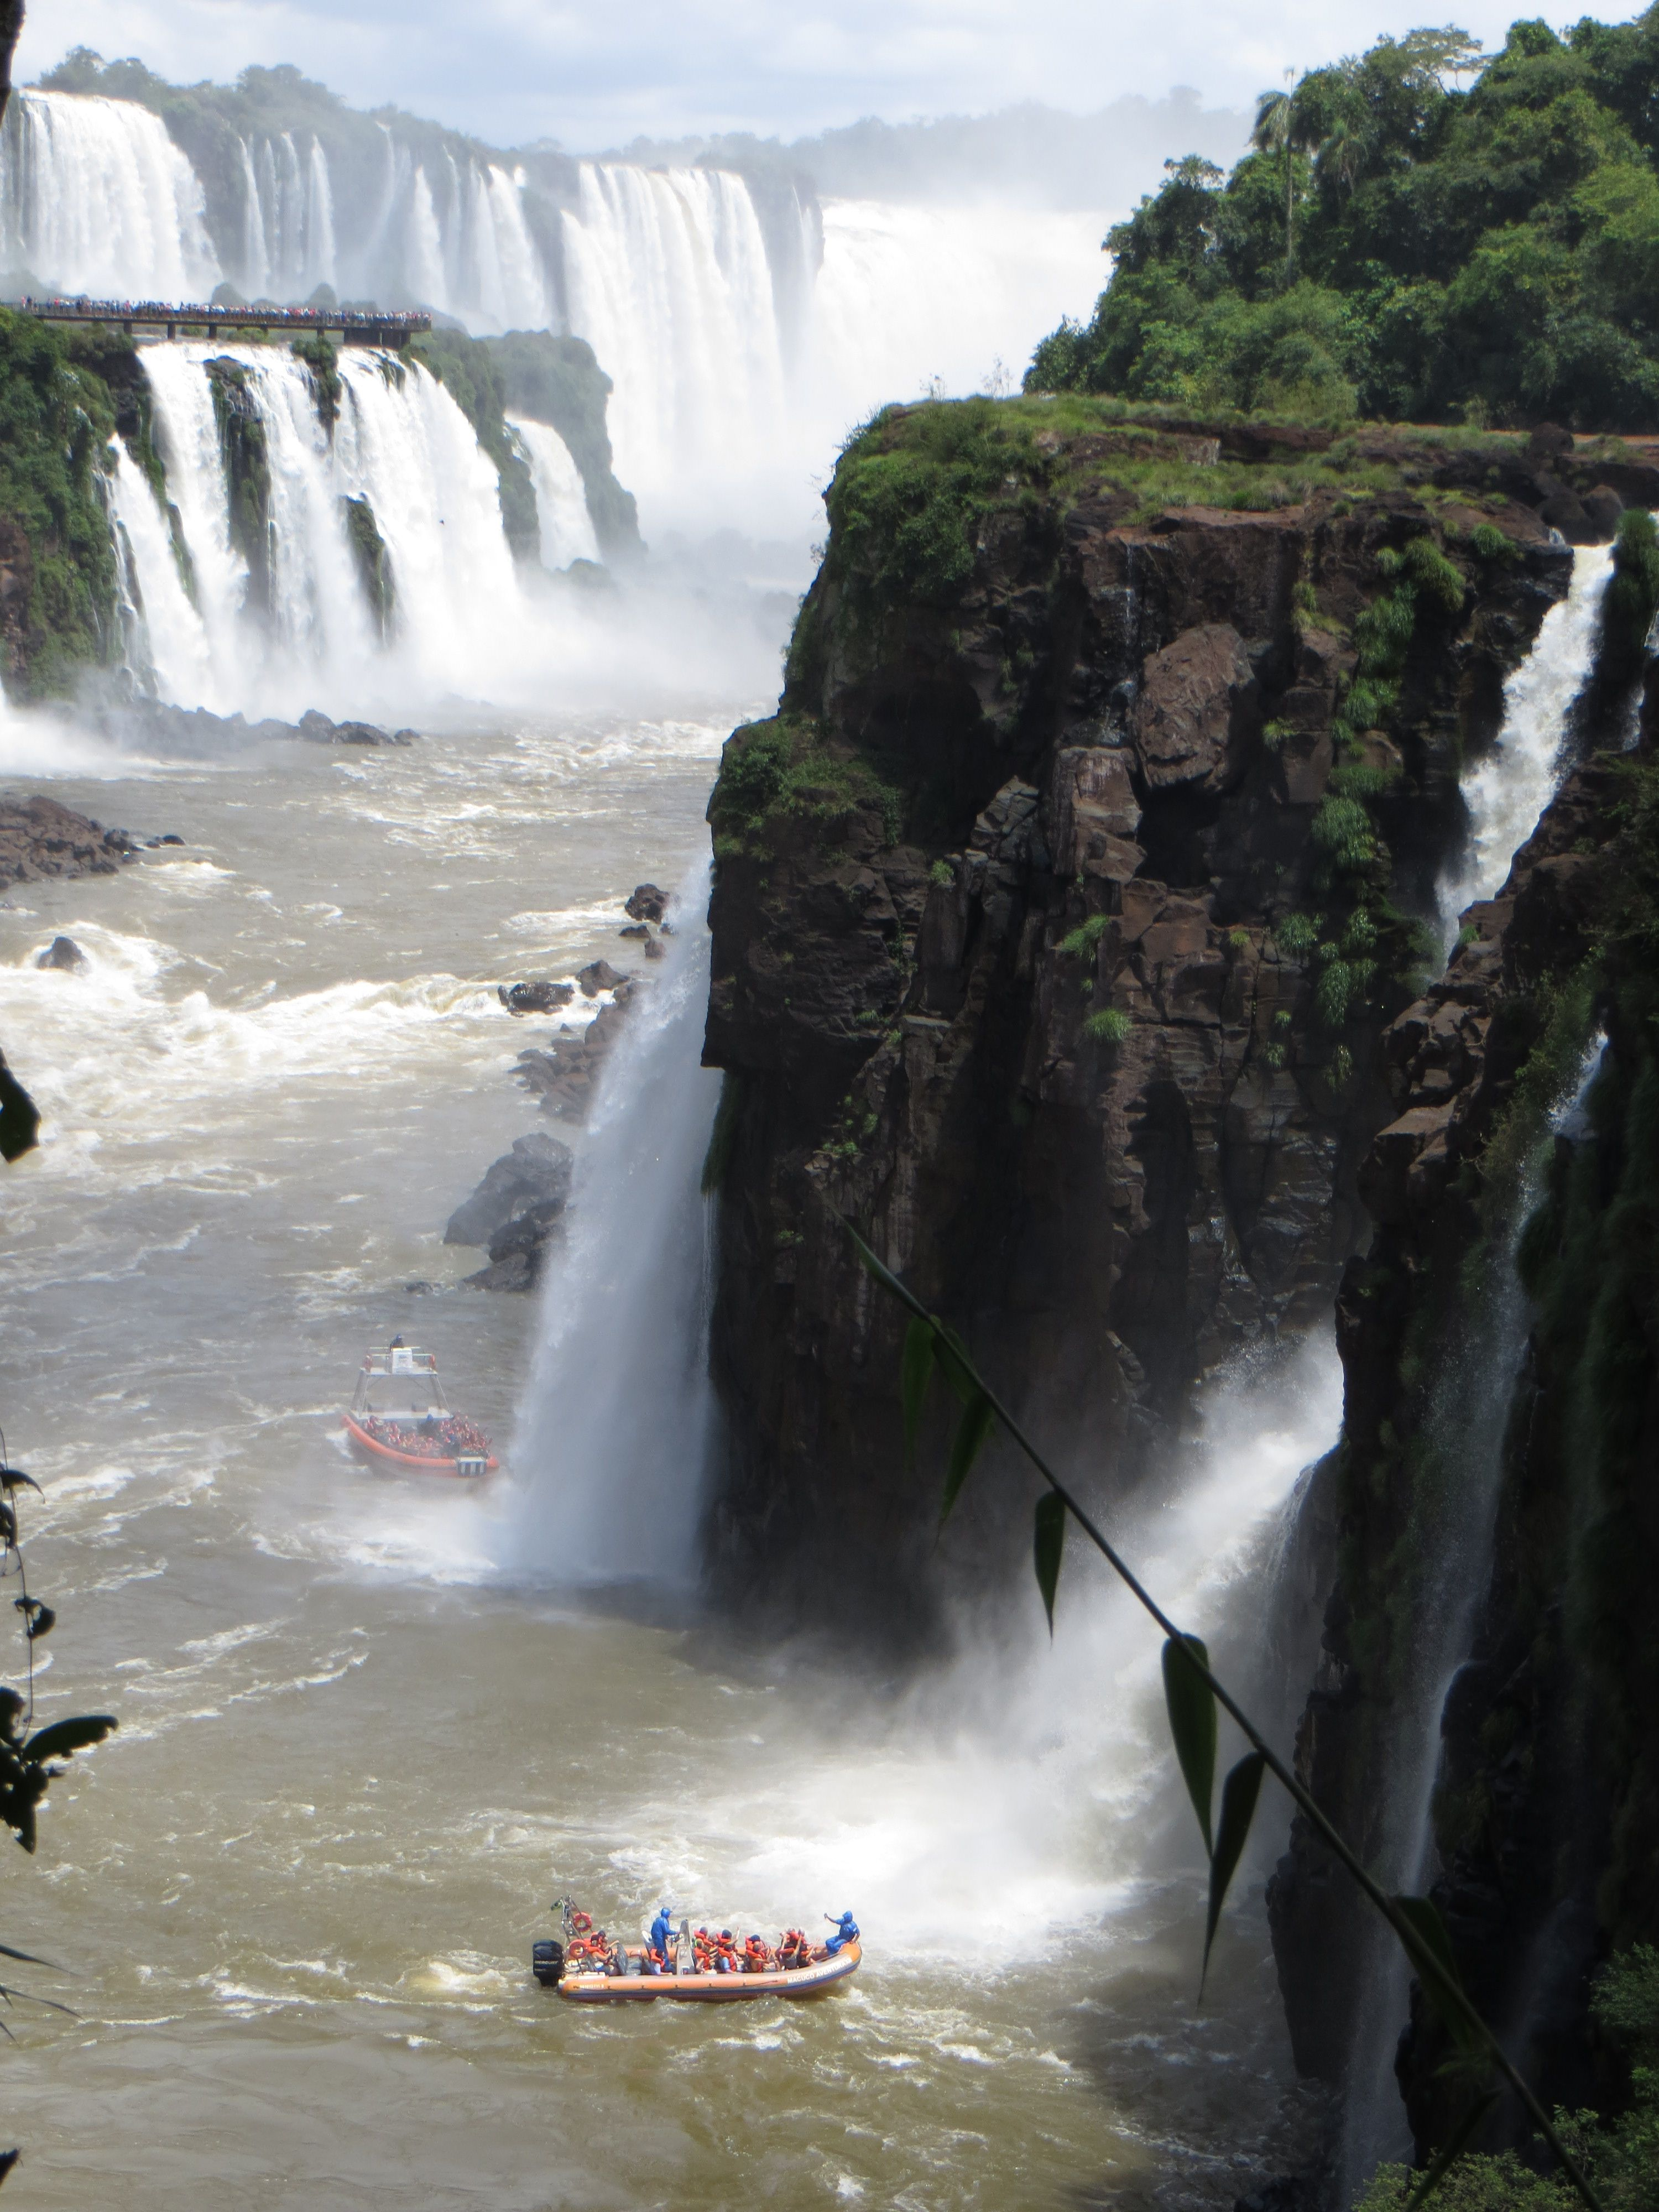 IguazuFalls I was here in 1993! Beautiful place. Us